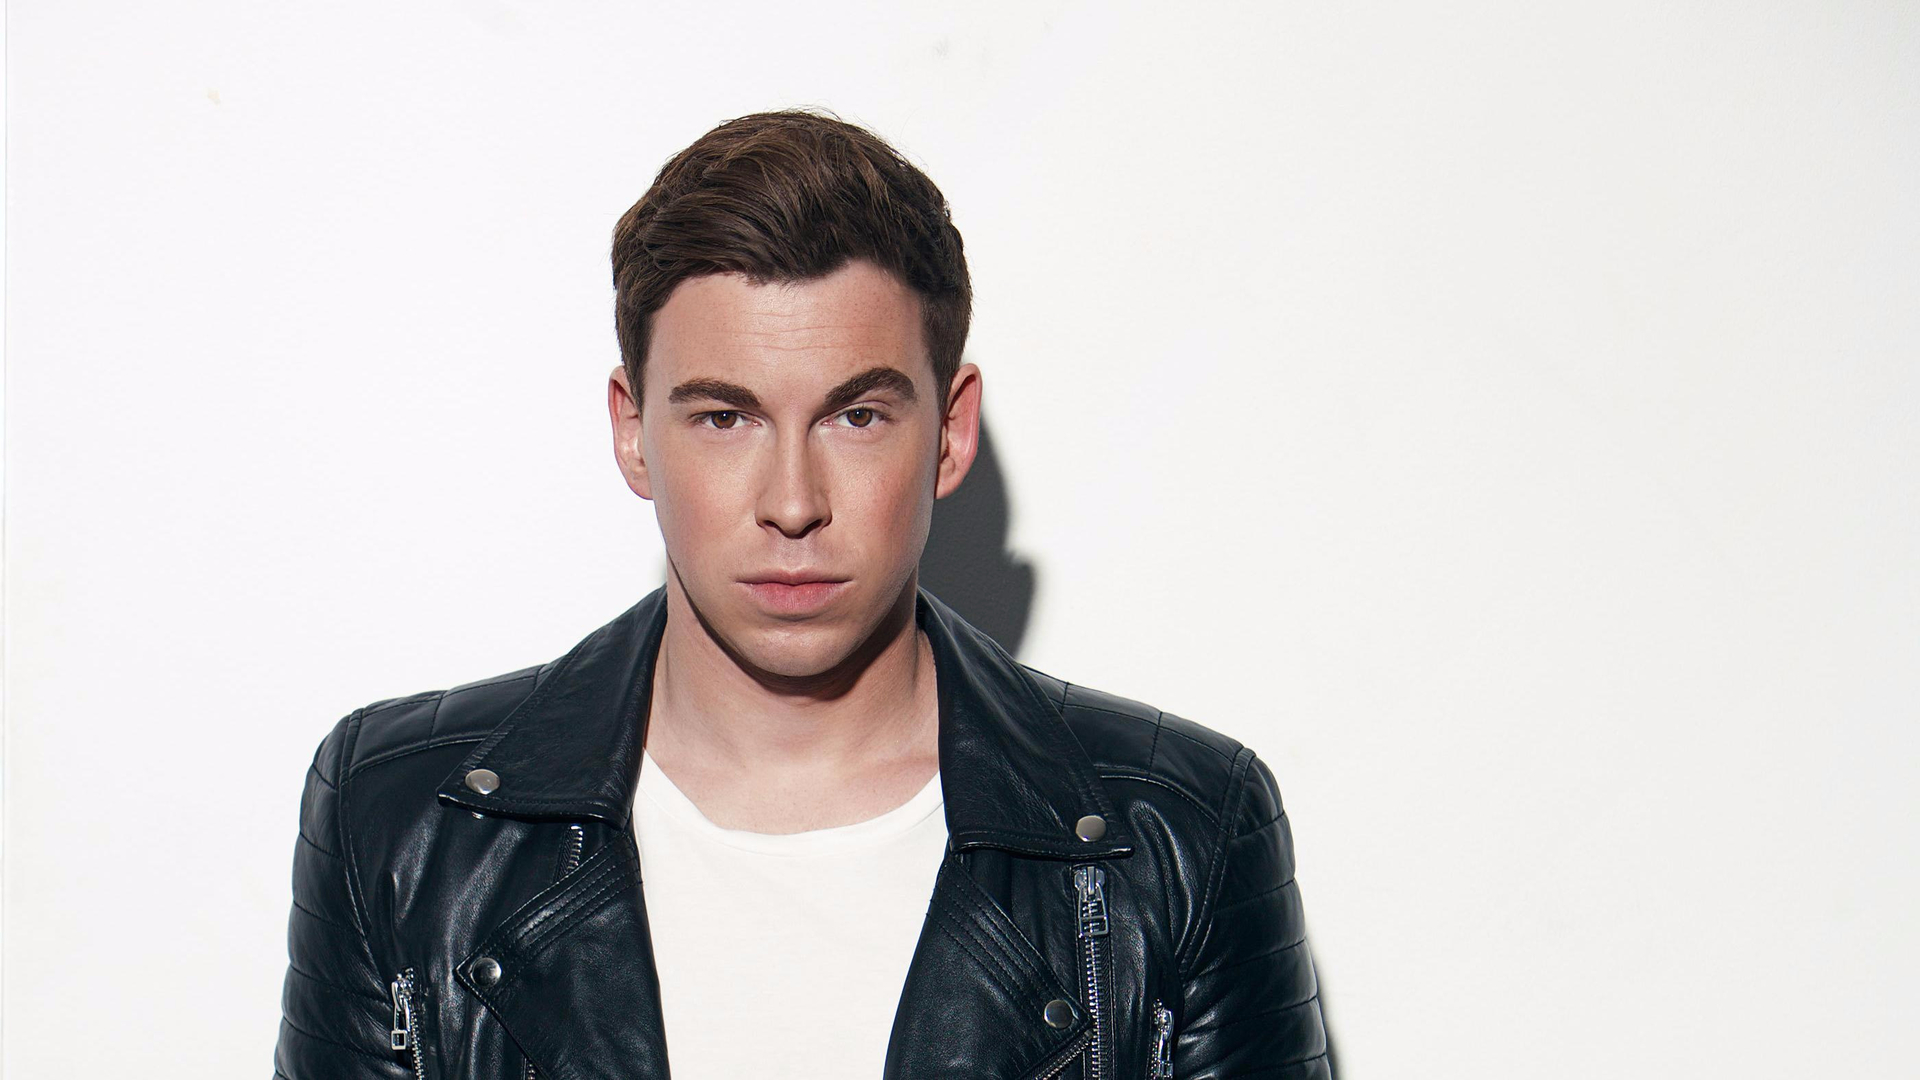 Shop and Meet DJ Hardwell  image